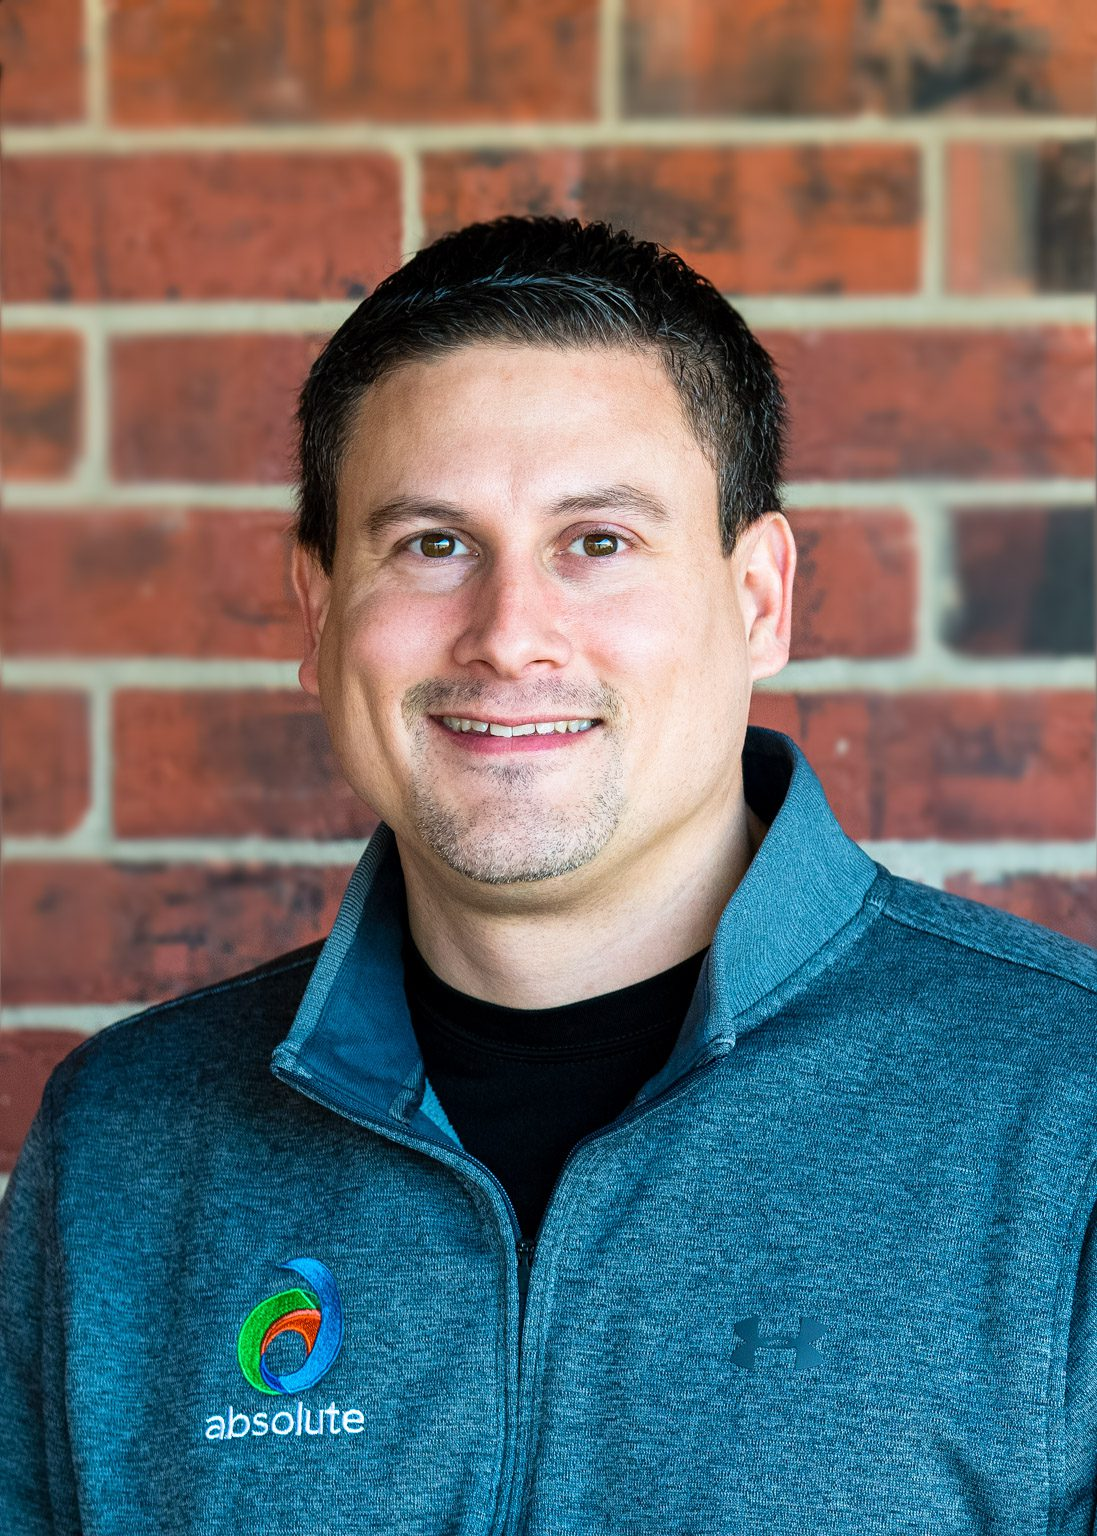 Absolute Technology Solutions - Chris Eich